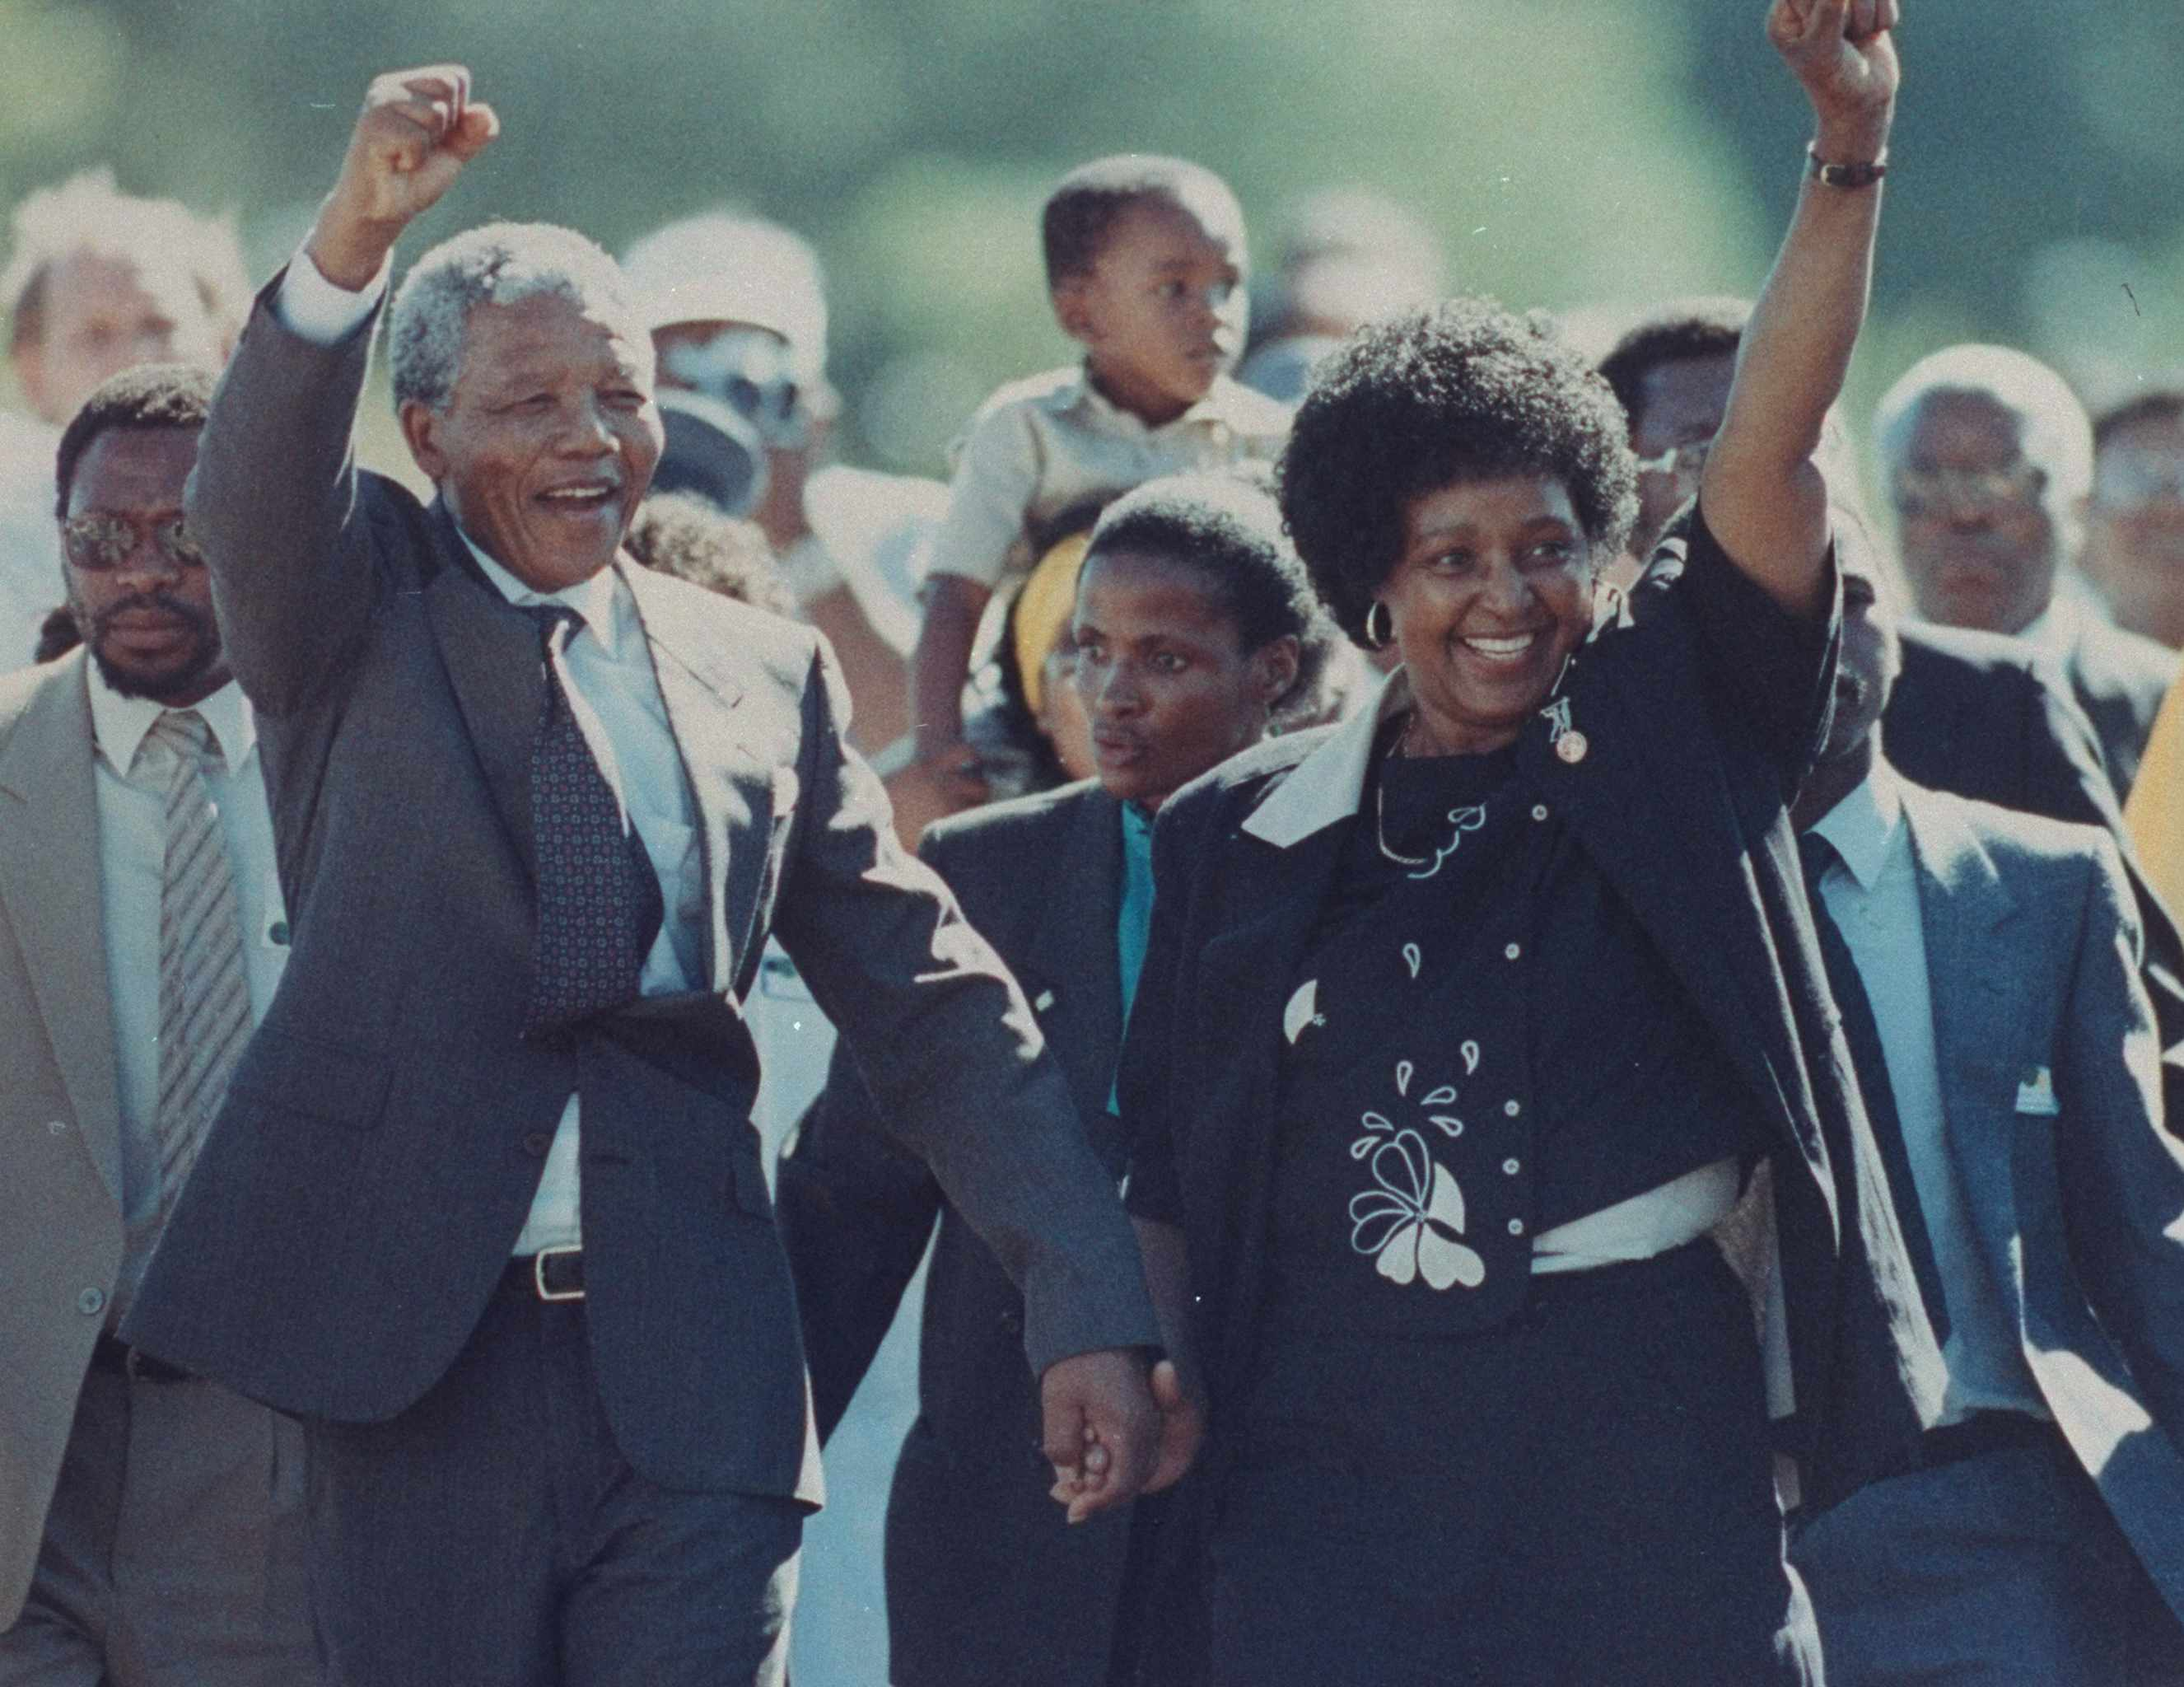 Nelson Mandela and wife Winnie Mandela upon his release from prison. (Photo by Allan Tannenbaum/The LIFE Images Collection/Getty Images)